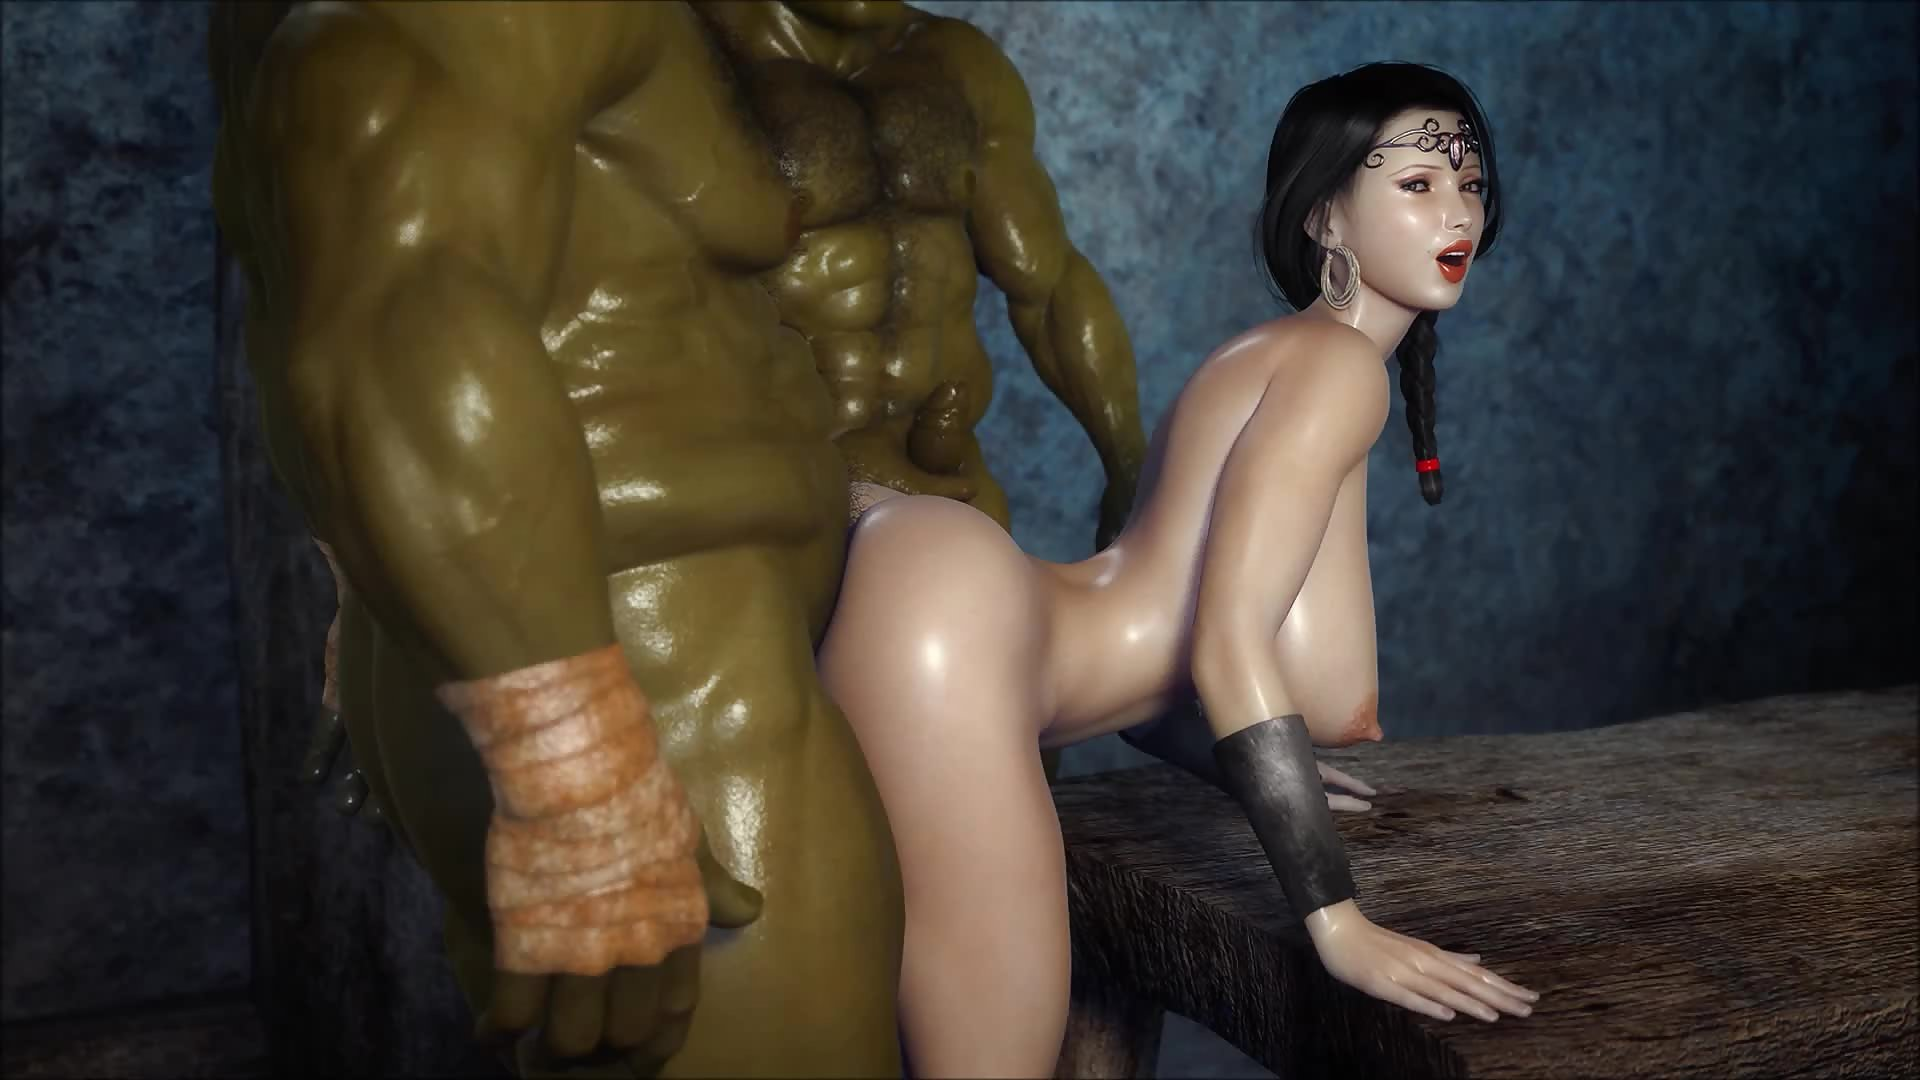 Free 3d xxx monster porn gifs nude videos